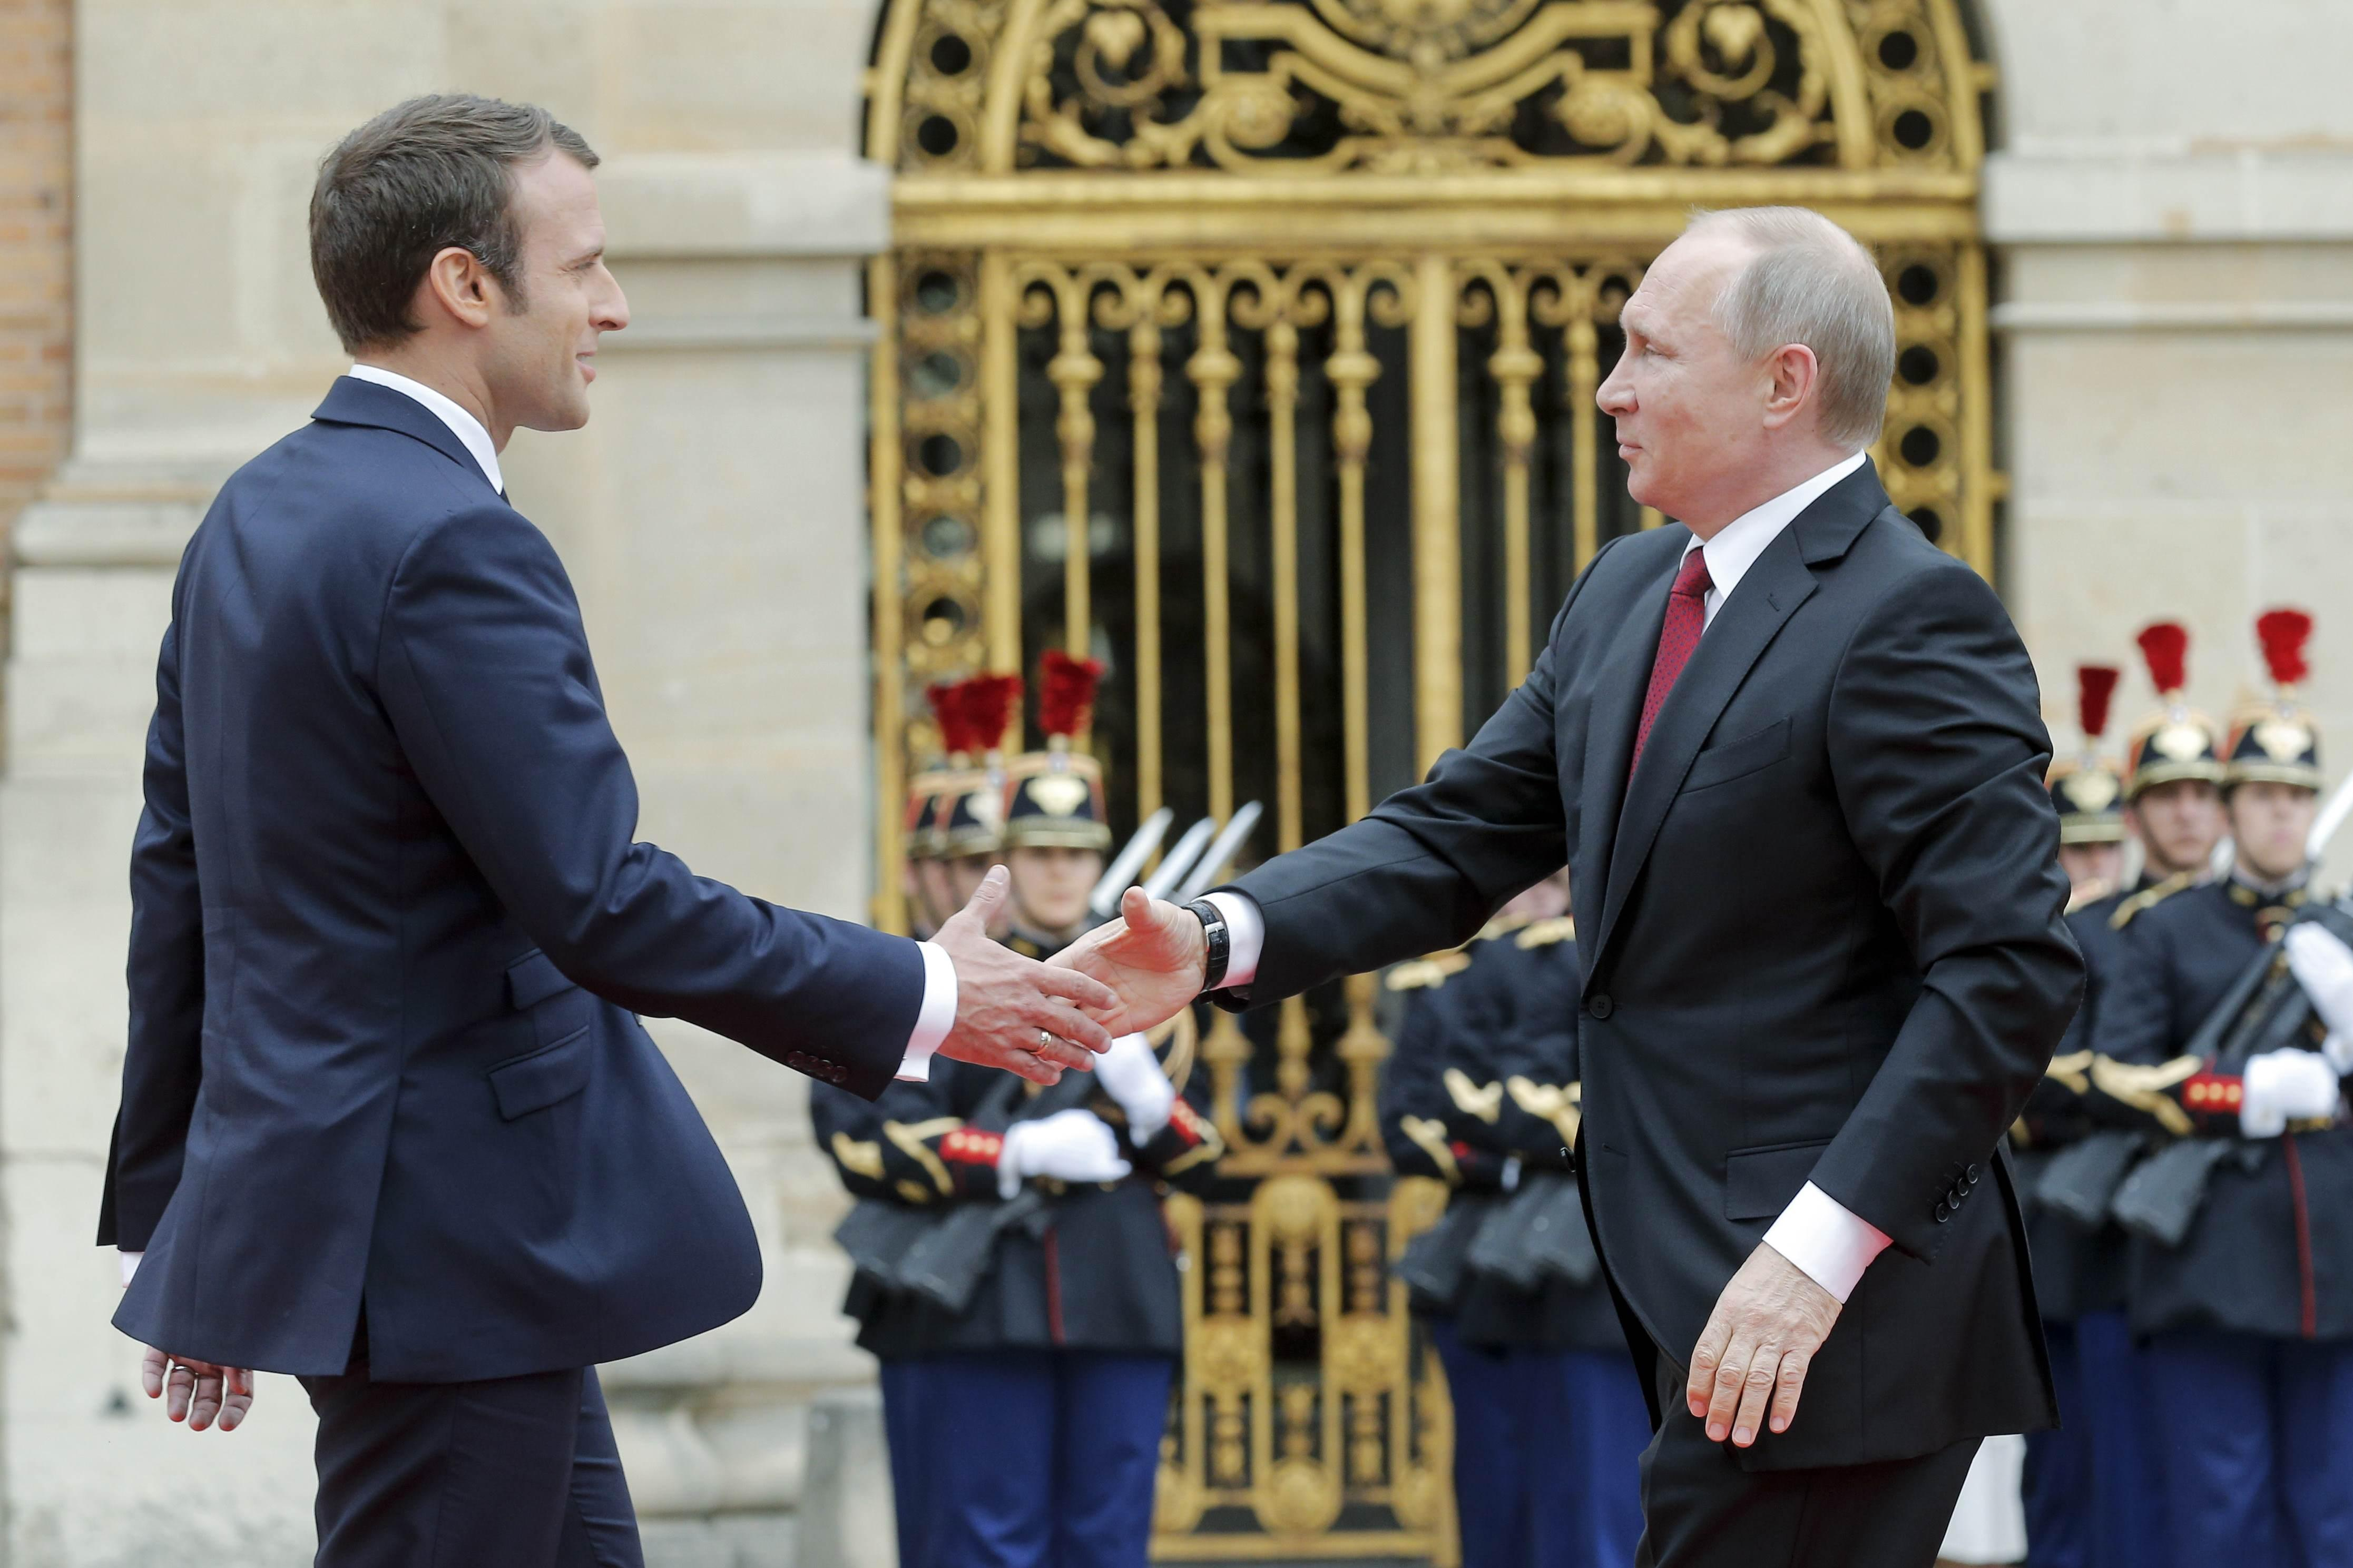 Putin visits France hoping to mend strained ties with West